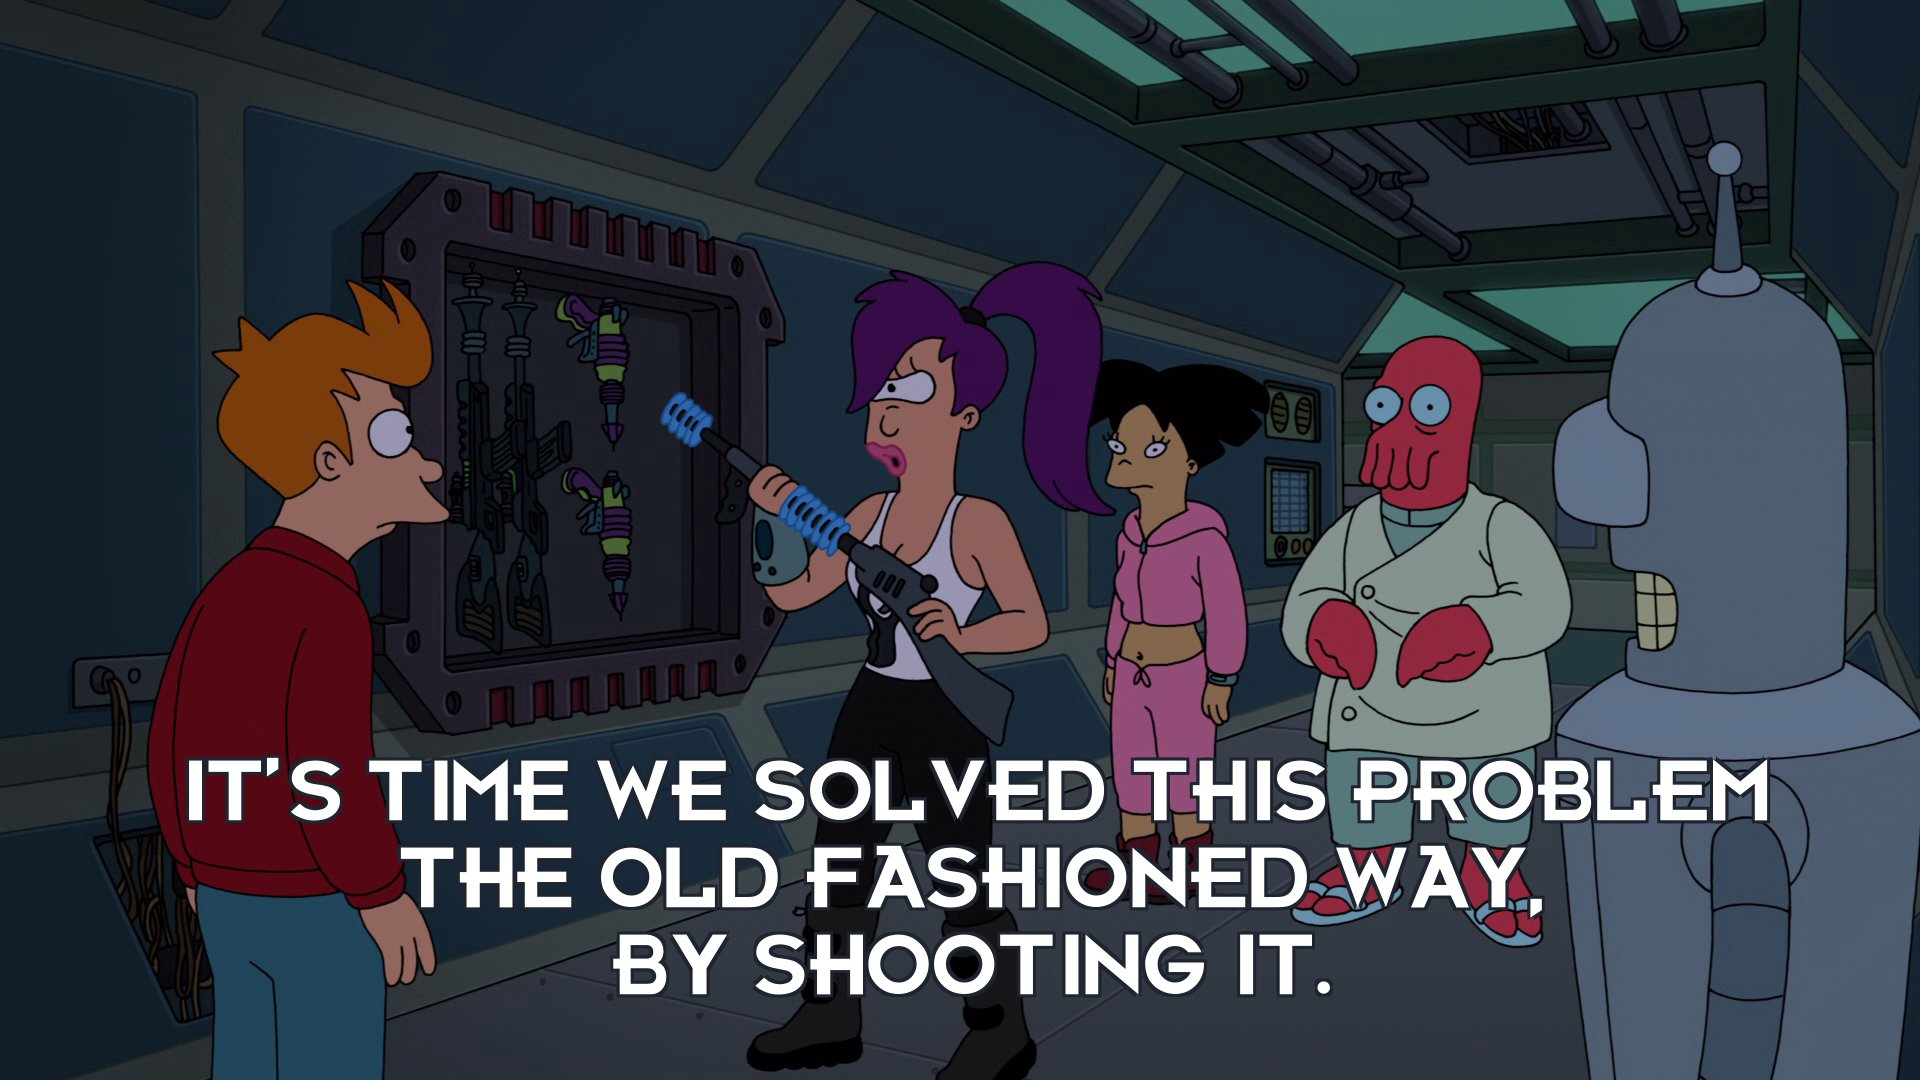 Turanga Leela: It's time we solved this problem the old fashioned way, by shooting it.